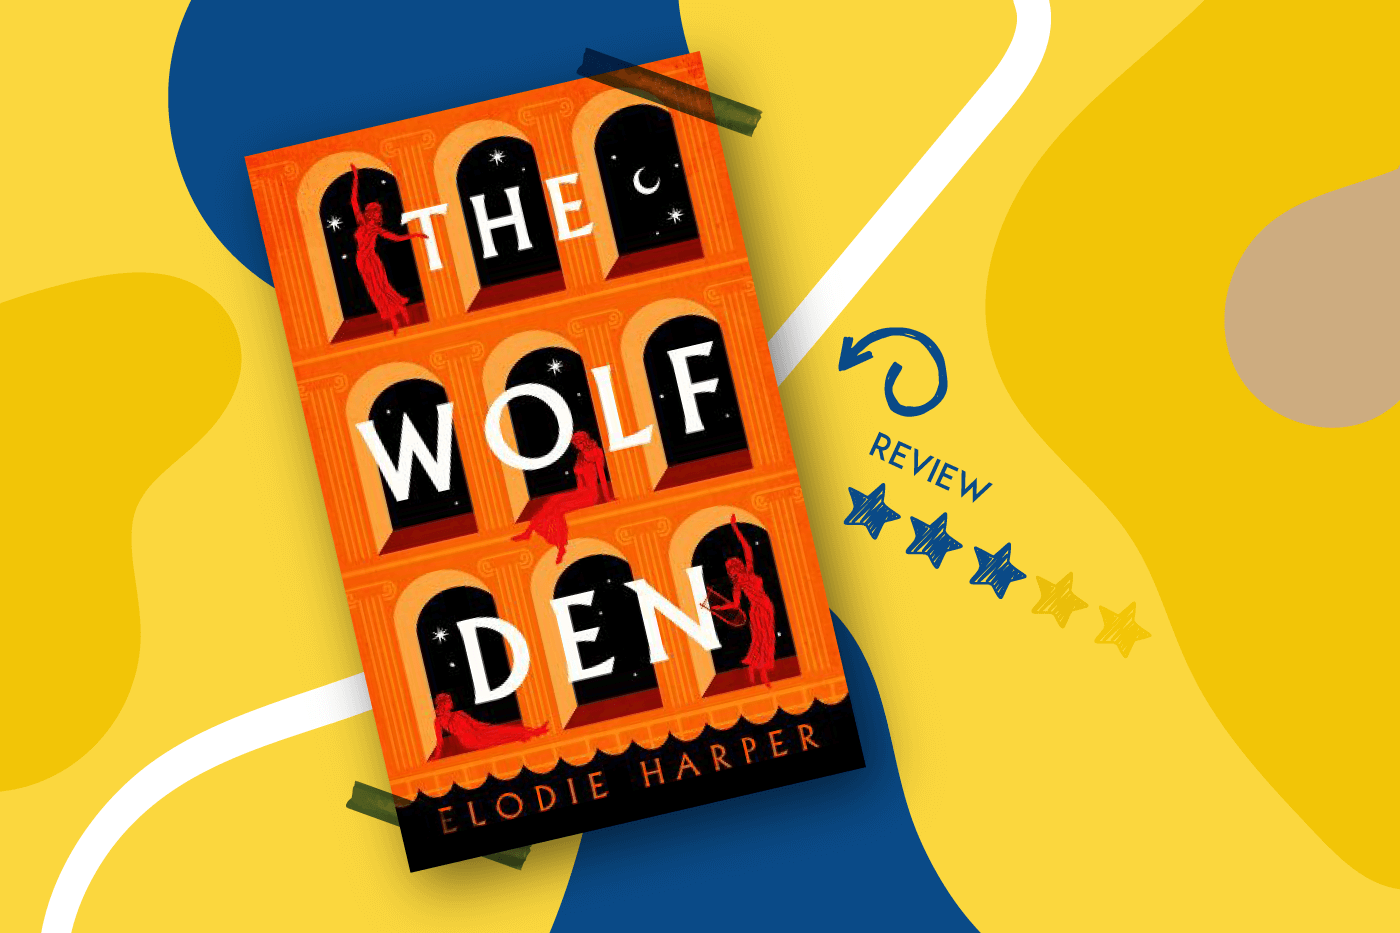 The Wolf Den by Elodie Harper Book Review